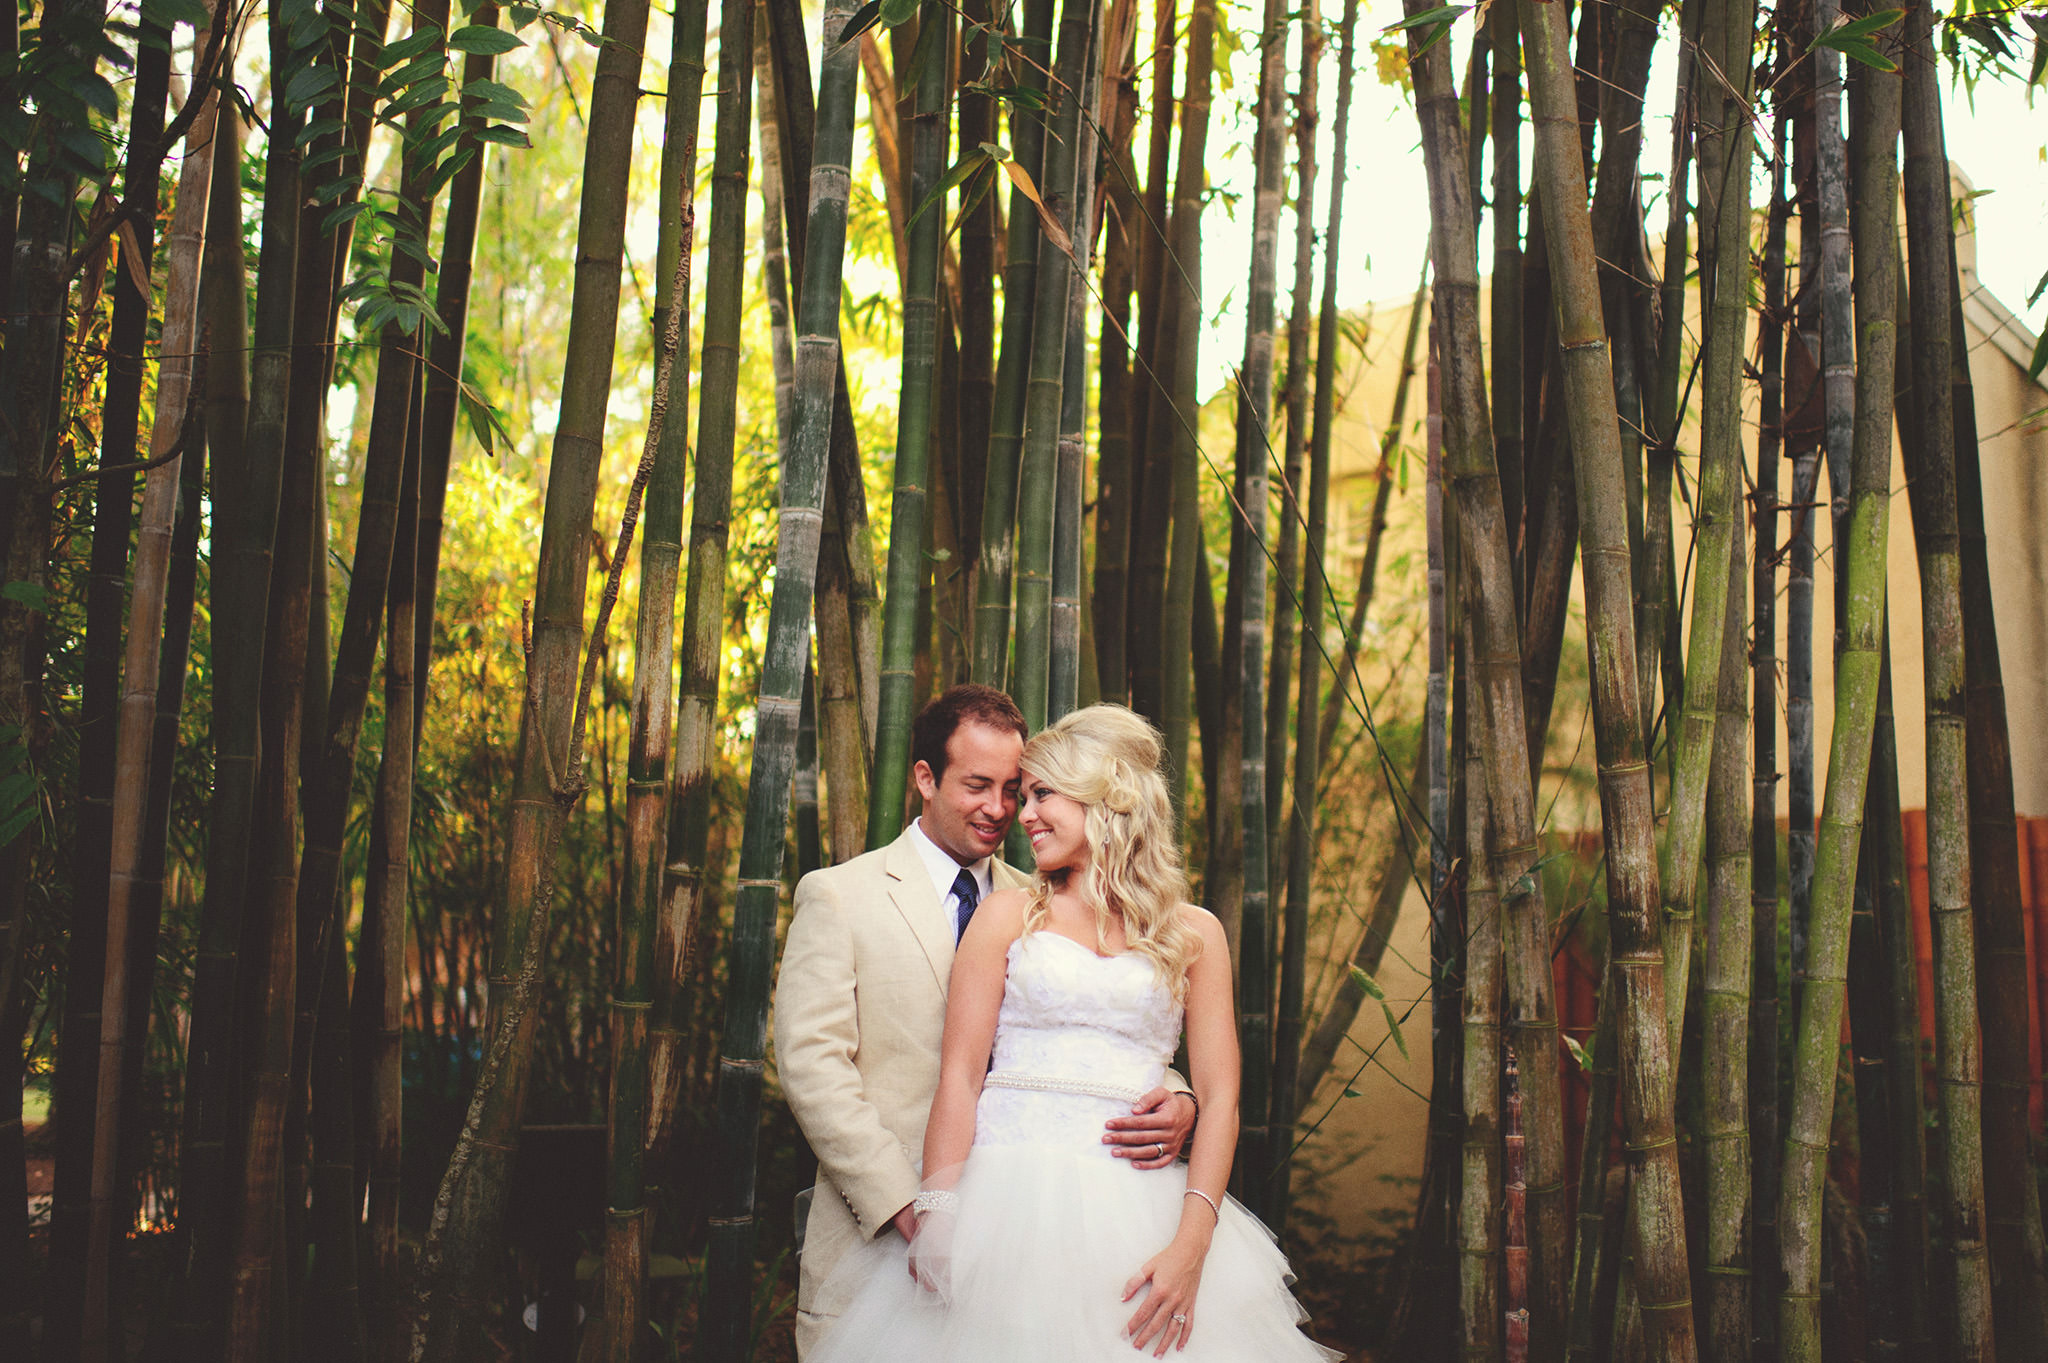 Kristin & Mitch Helmuth 01.07.12